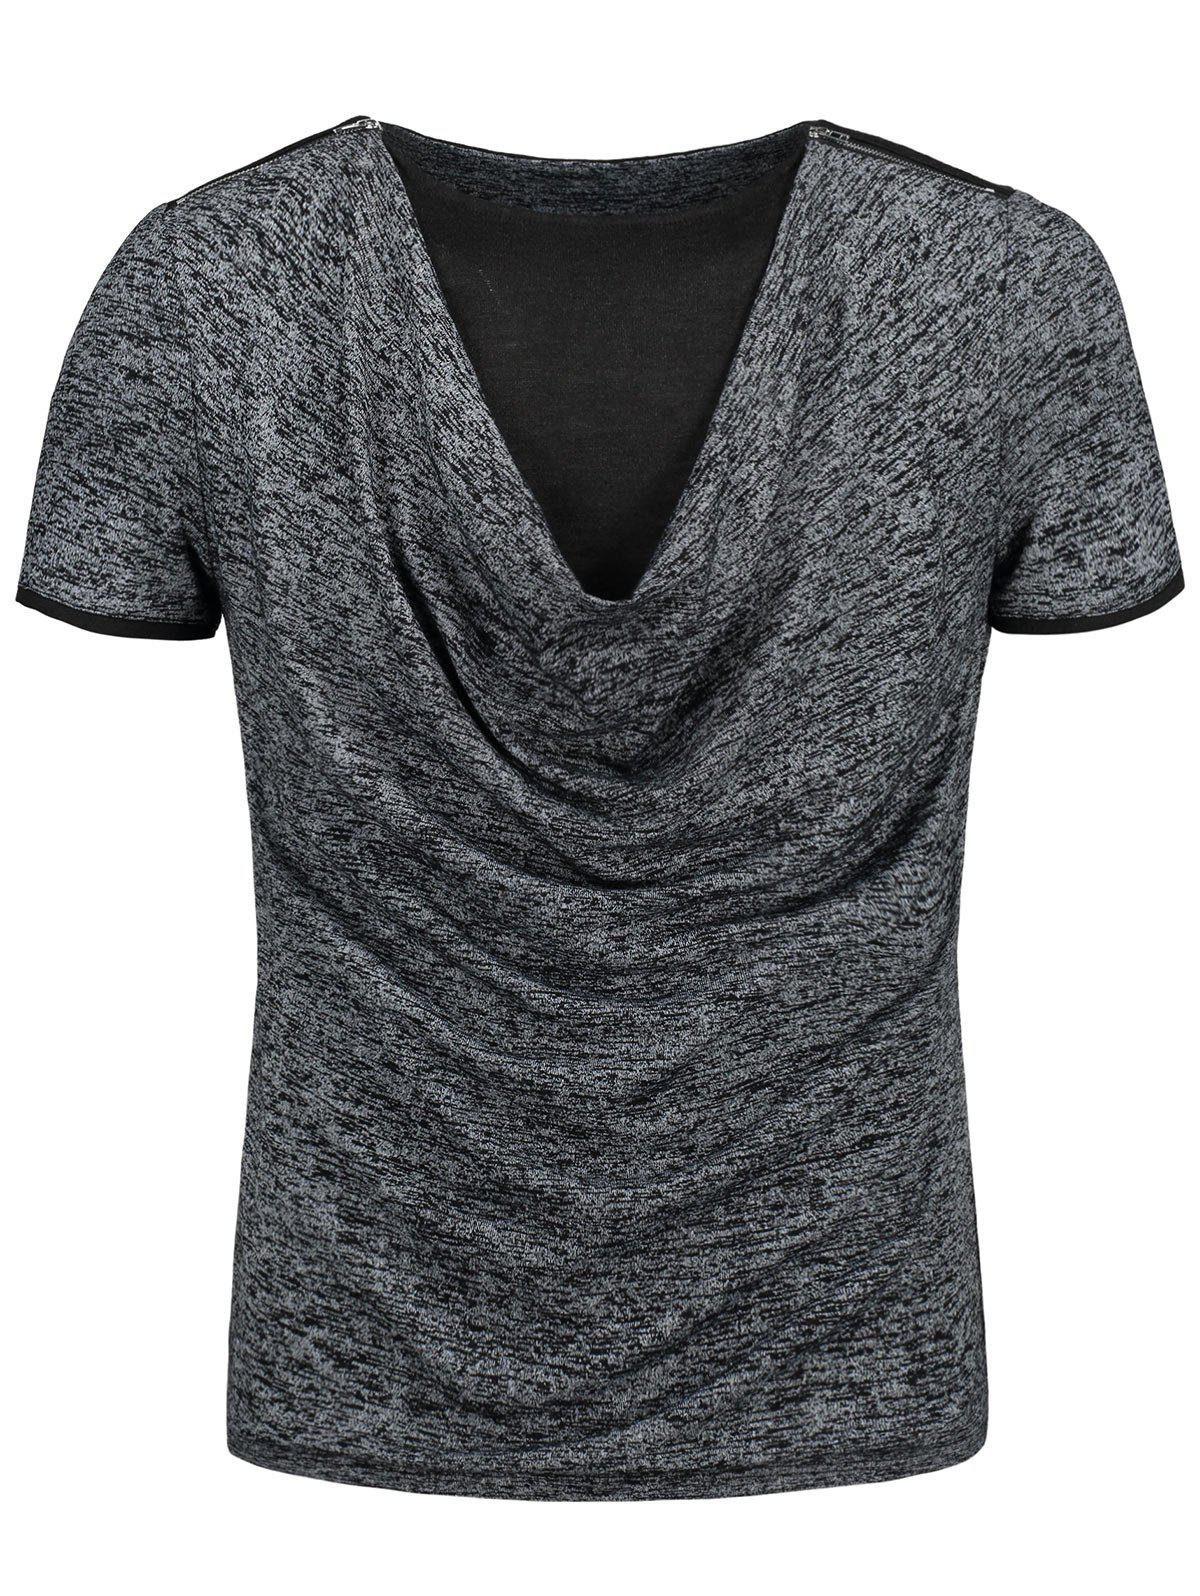 Unique Cowl Neck Marled T-shirt